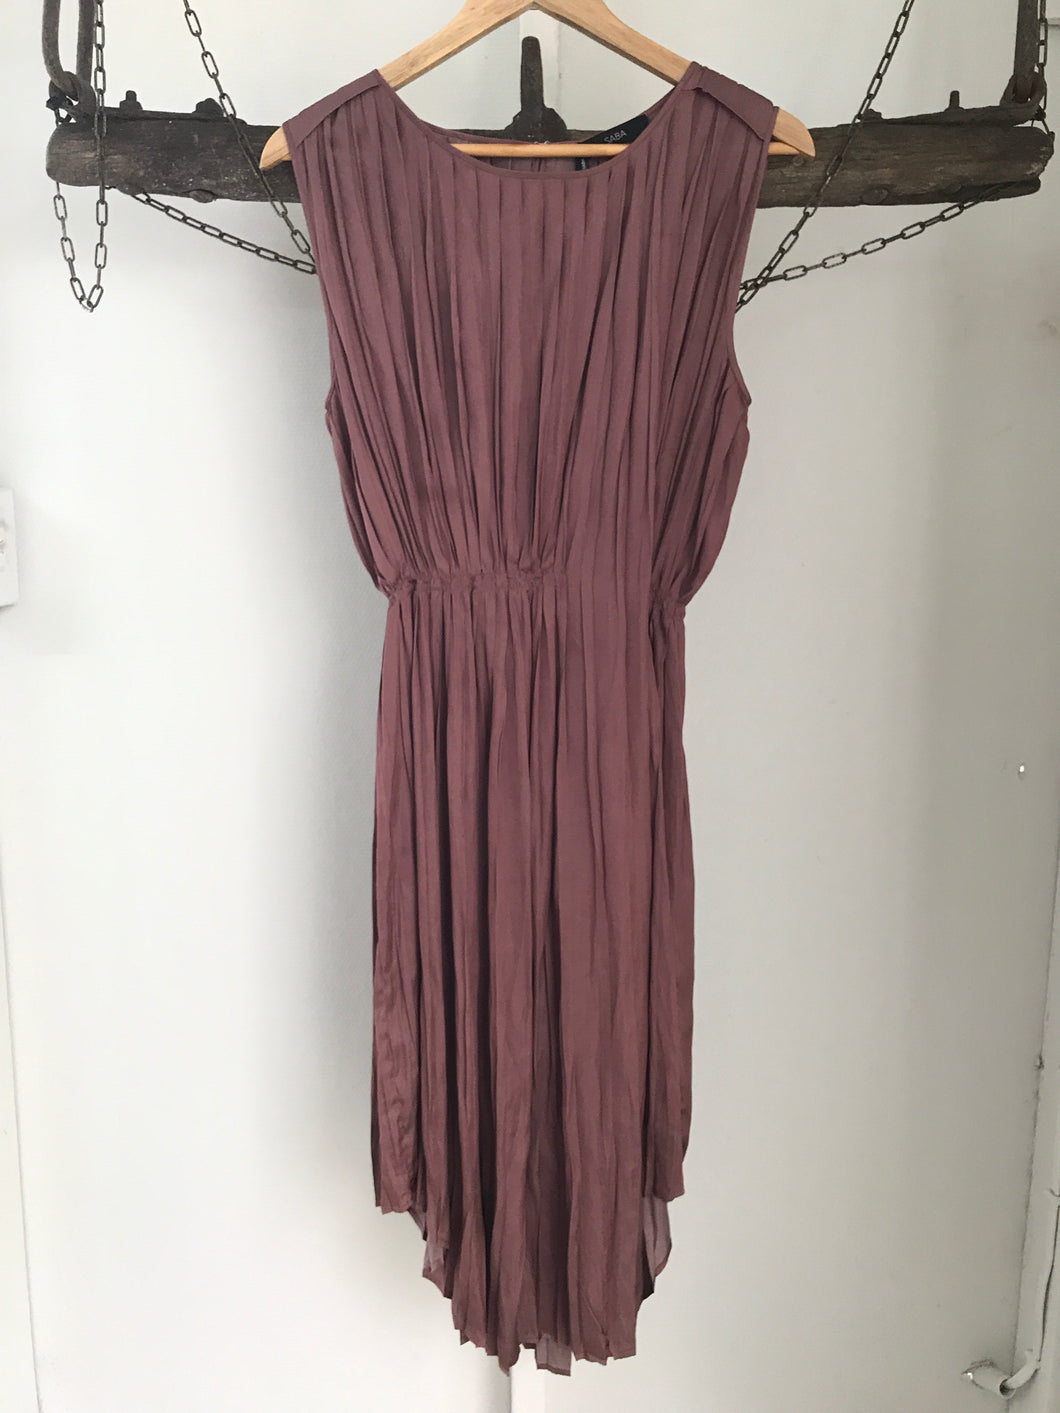 Saba Bronze 3/4 Dress Size 8NWT